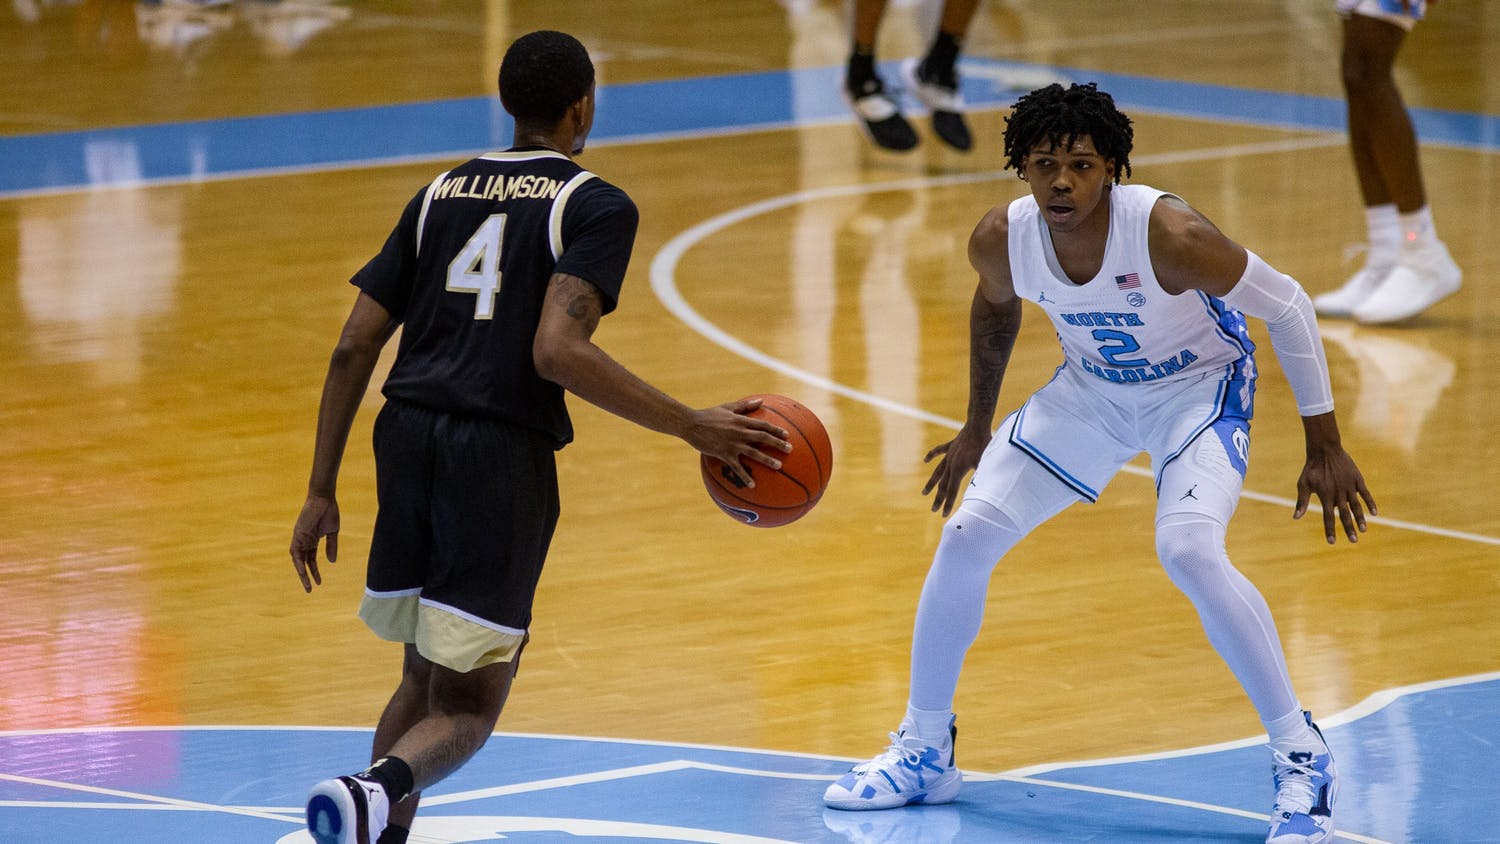 UNC freshman guard Caleb Love (2) defends against Wake Forest junior guard Daivien Williamson (4) in the Dean Smith Center Jan. 20, 2021. The Tar Heels beat the Demon Deacons 80-73.